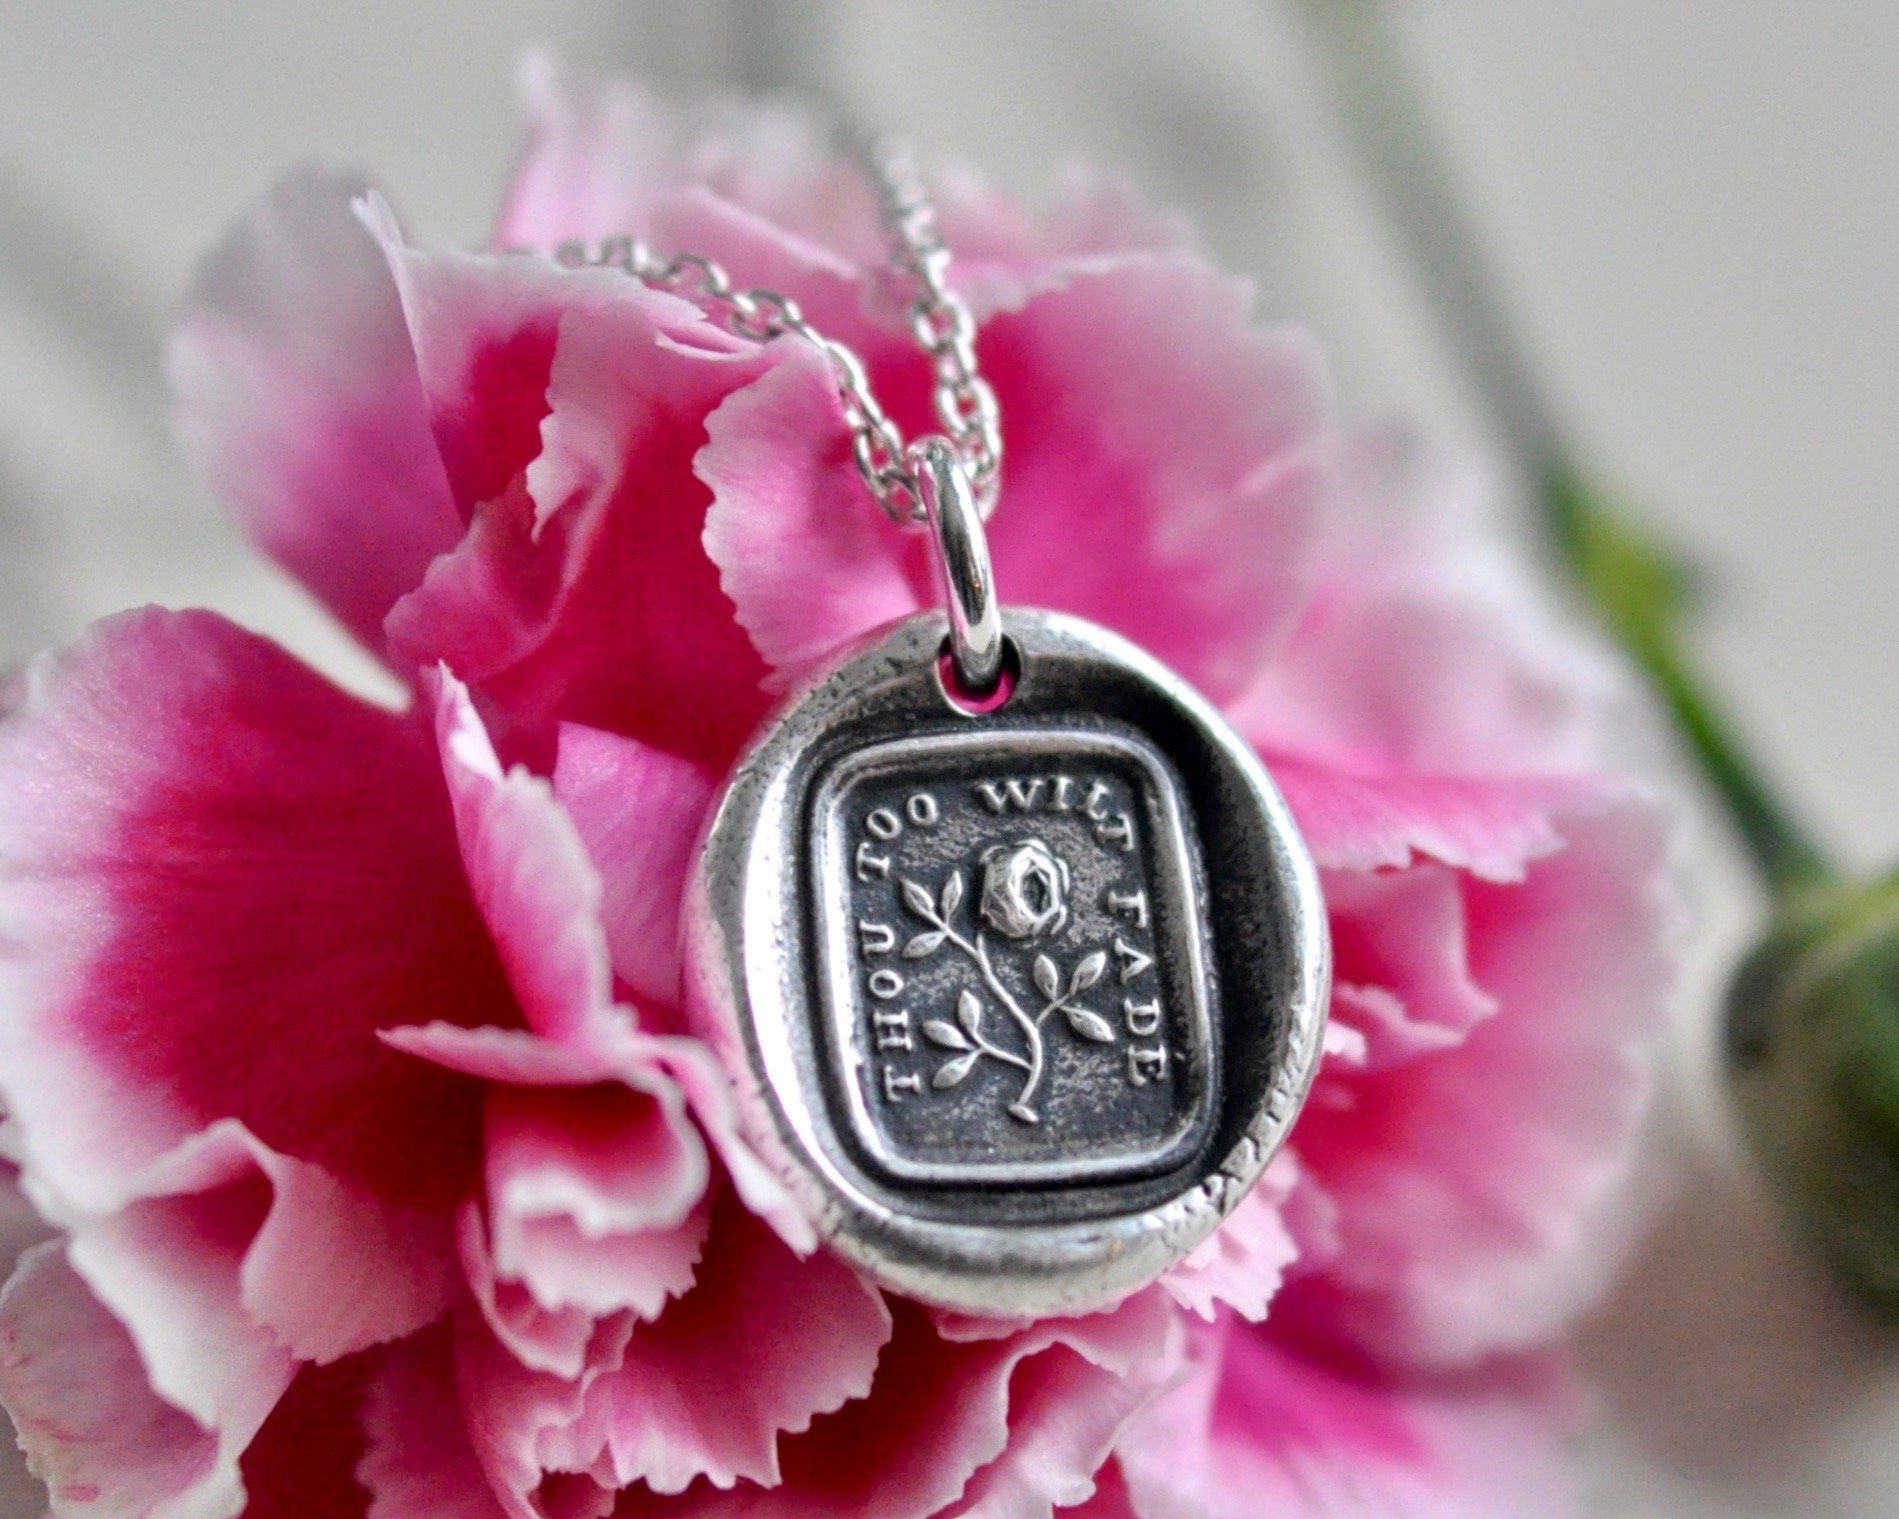 Rose wax seal necklace thou too wilt fade wax seal